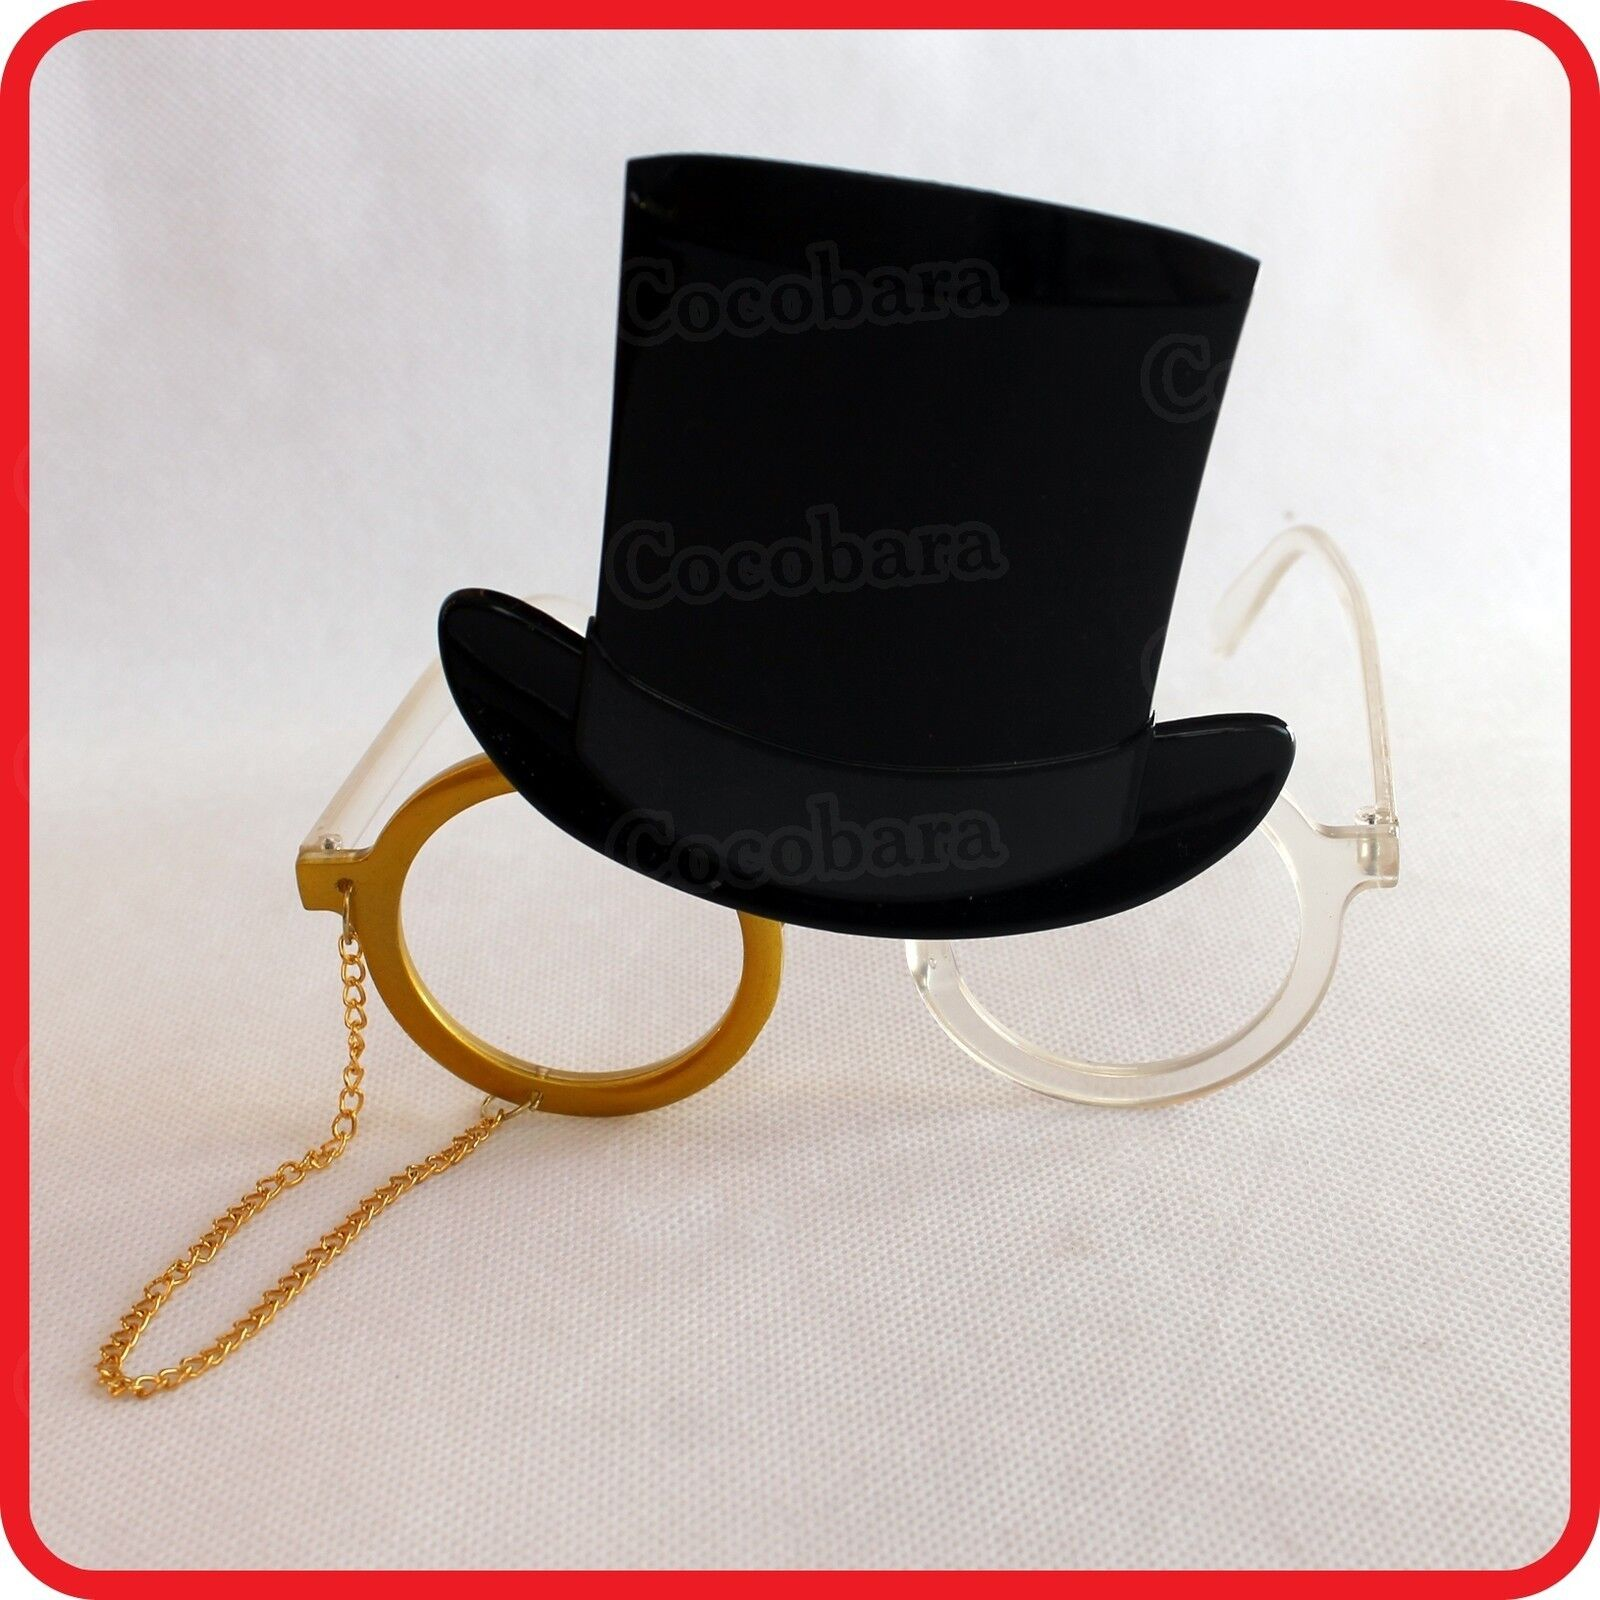 CLASSICAL DOCTOR PROFESSOR TOP HAT MONOCLES-GLASSES CHAIN LANYARD-COSTUME-PARTY